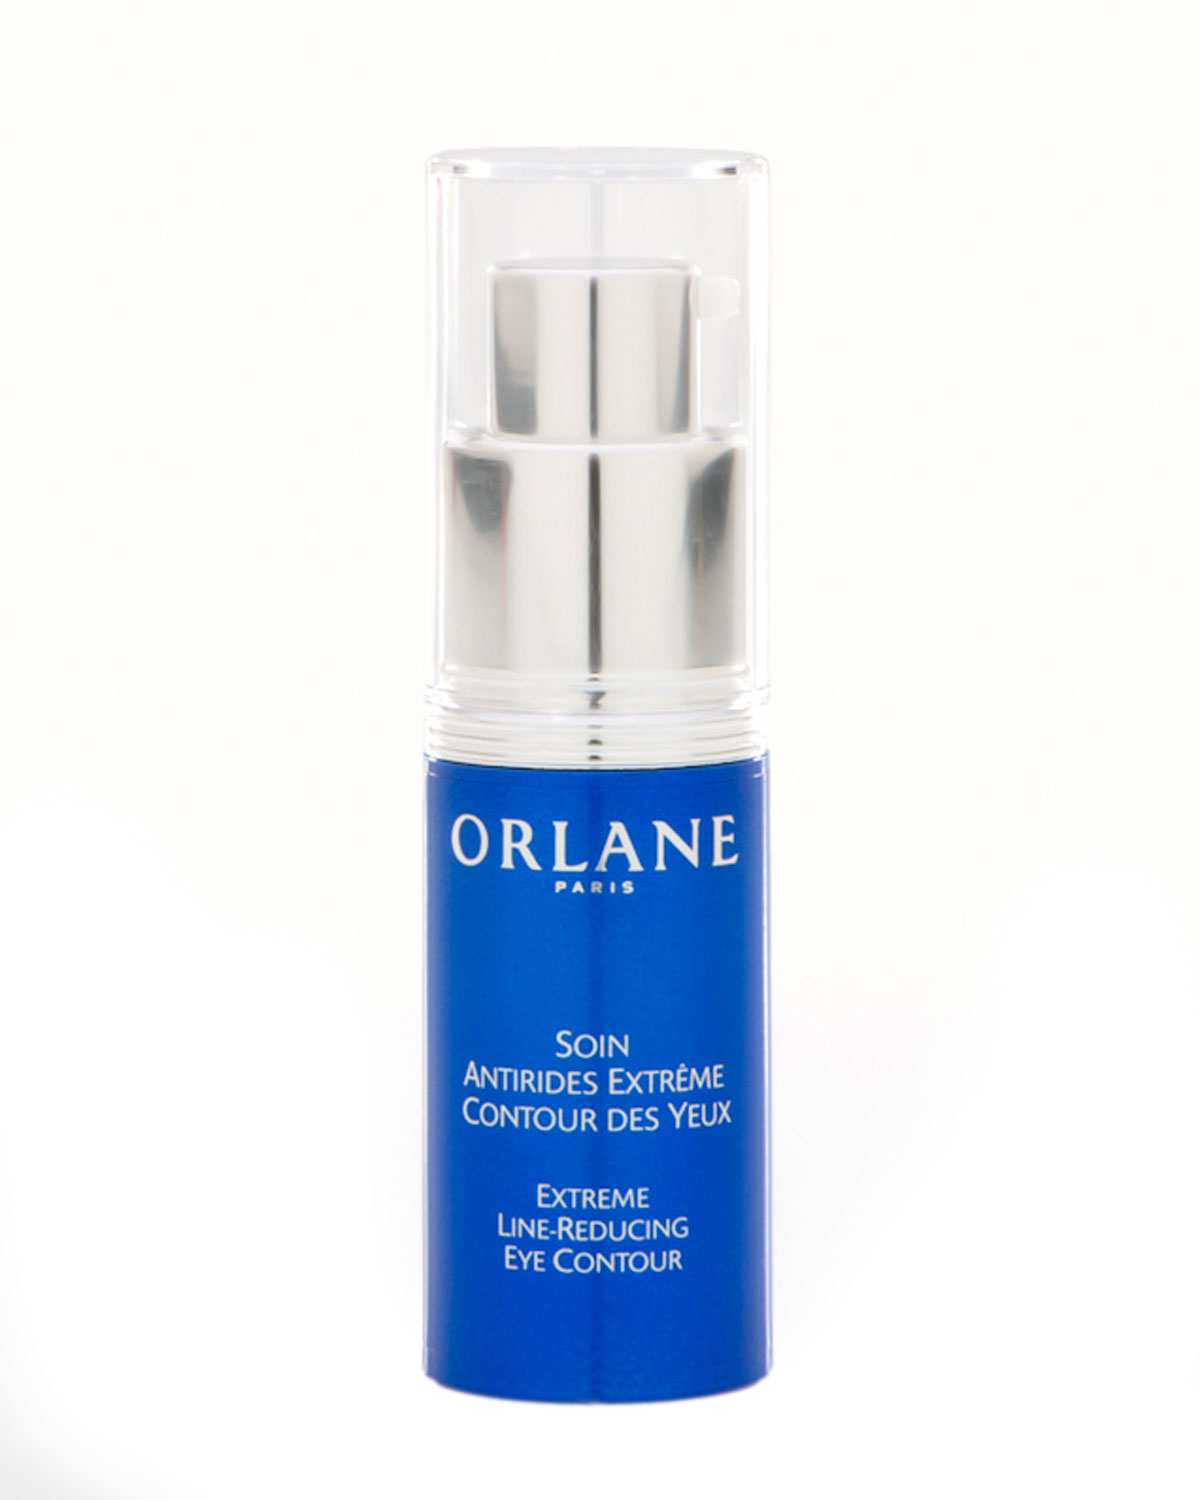 Orlane EXTREME LINE REDUCING EYE CONTOUR, 0.5 OZ./ 15 ML